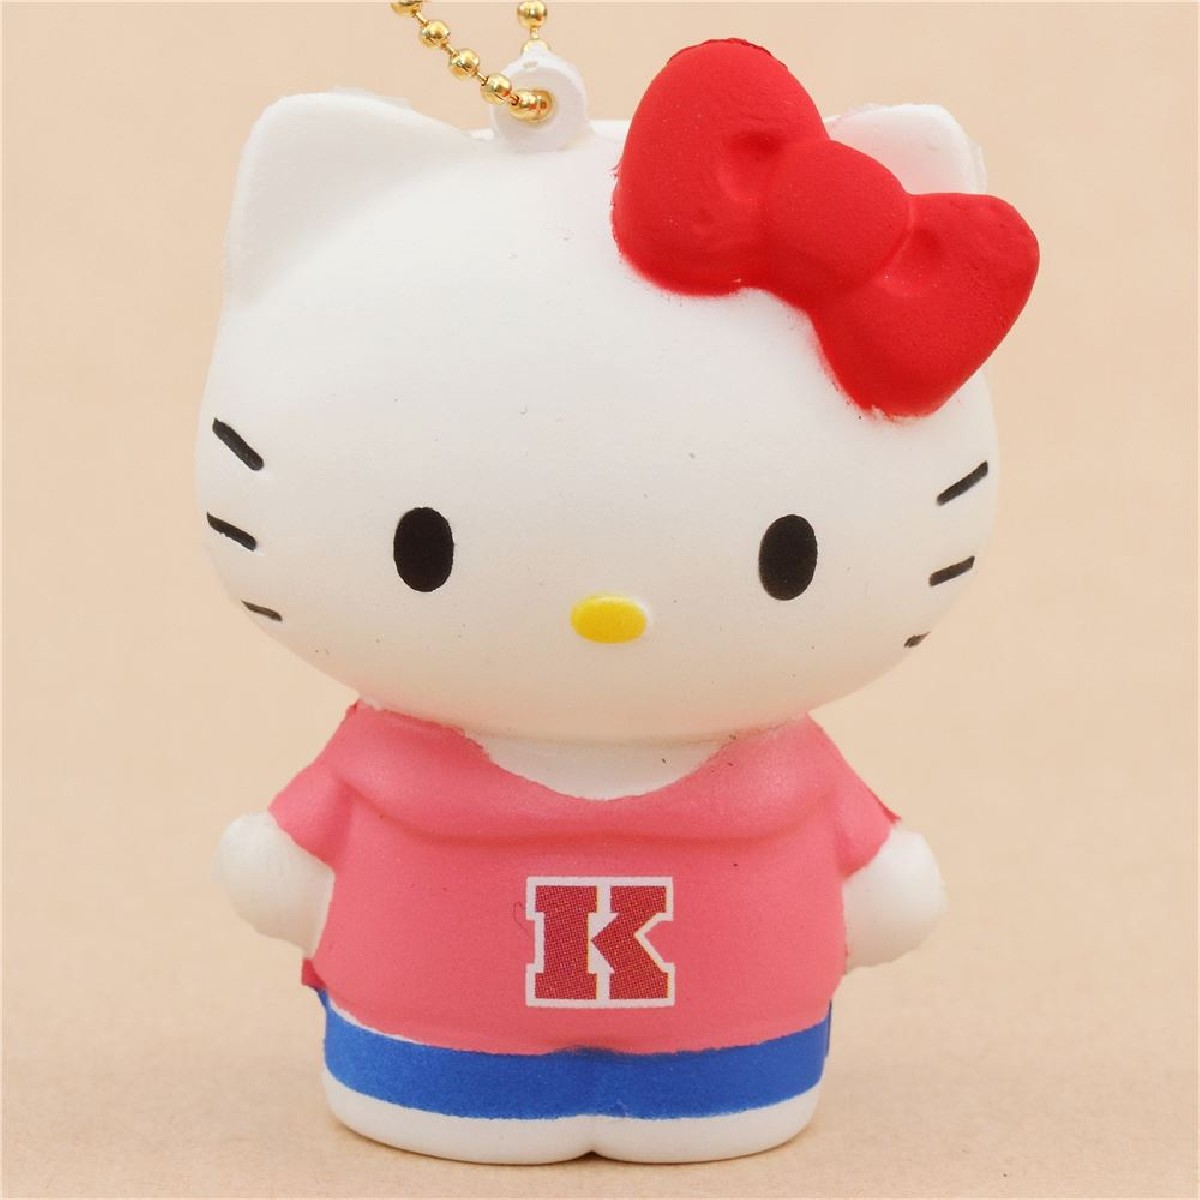 Sakura Squishy Model Kepala Kelinci Daftar Harga Terkini Dan Mao Rusa Preorder Hello Kitty Mascot Cute Shop Source